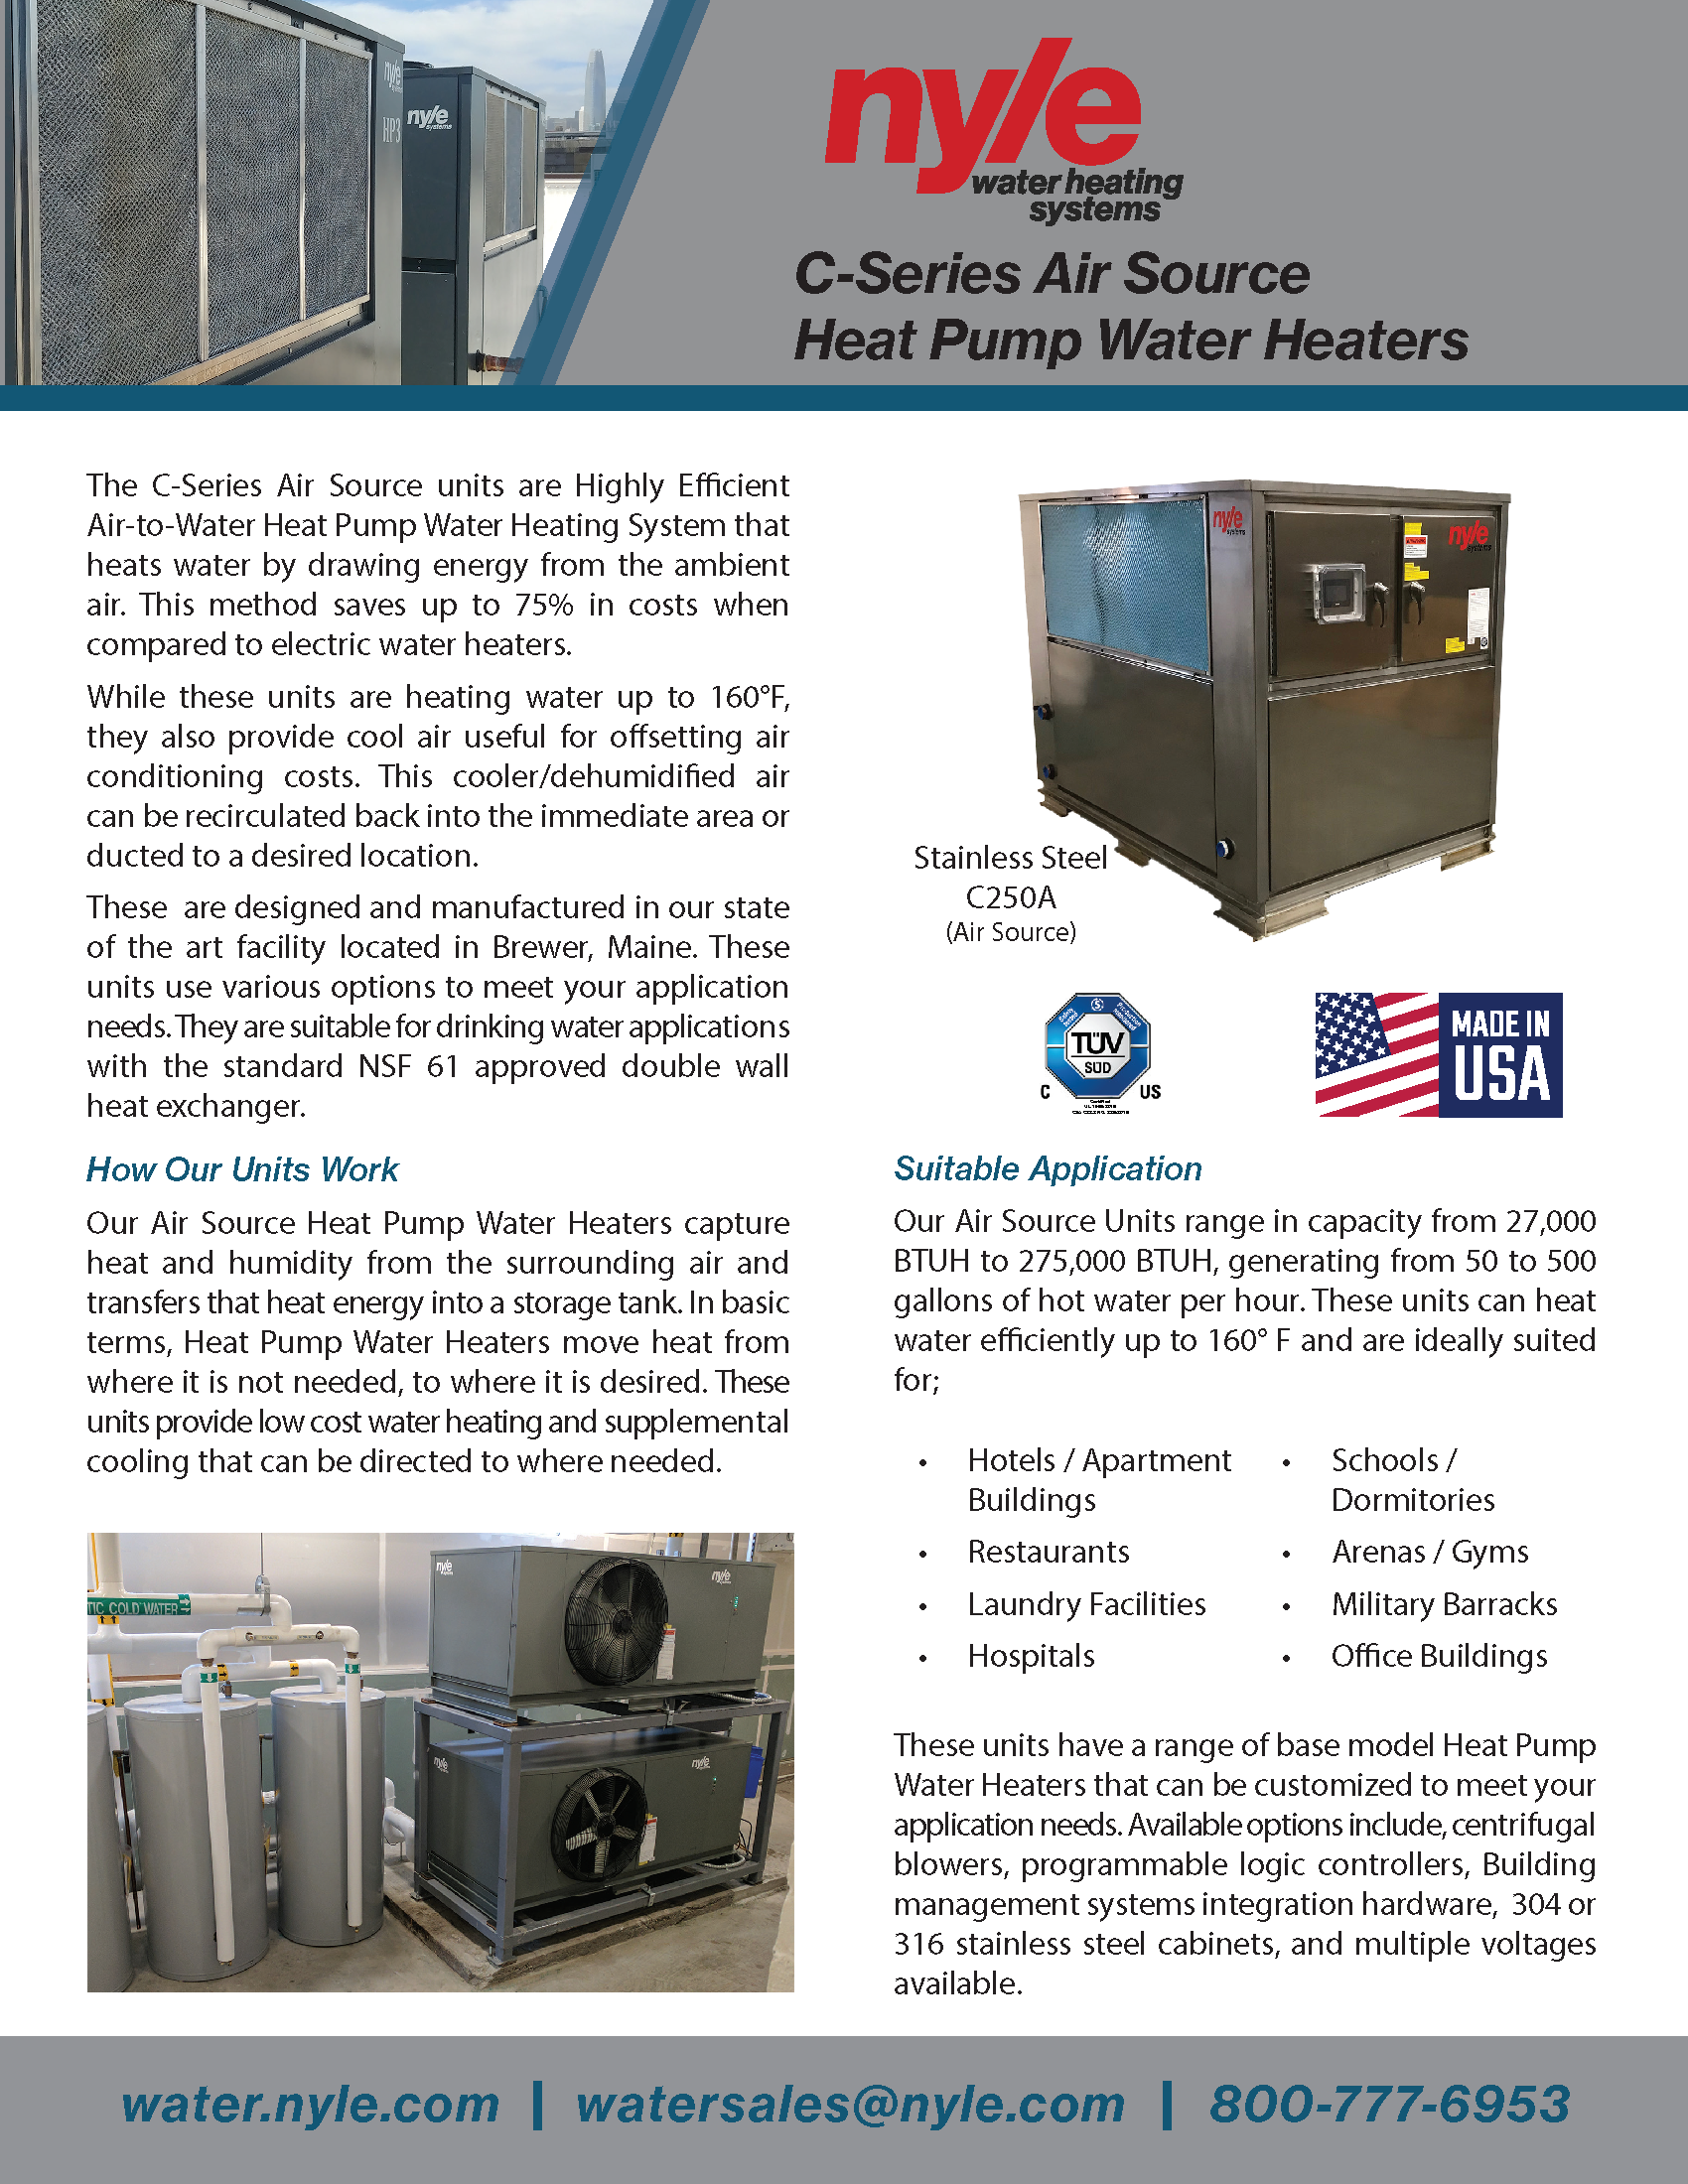 C-Series Air Source Sales Sheet